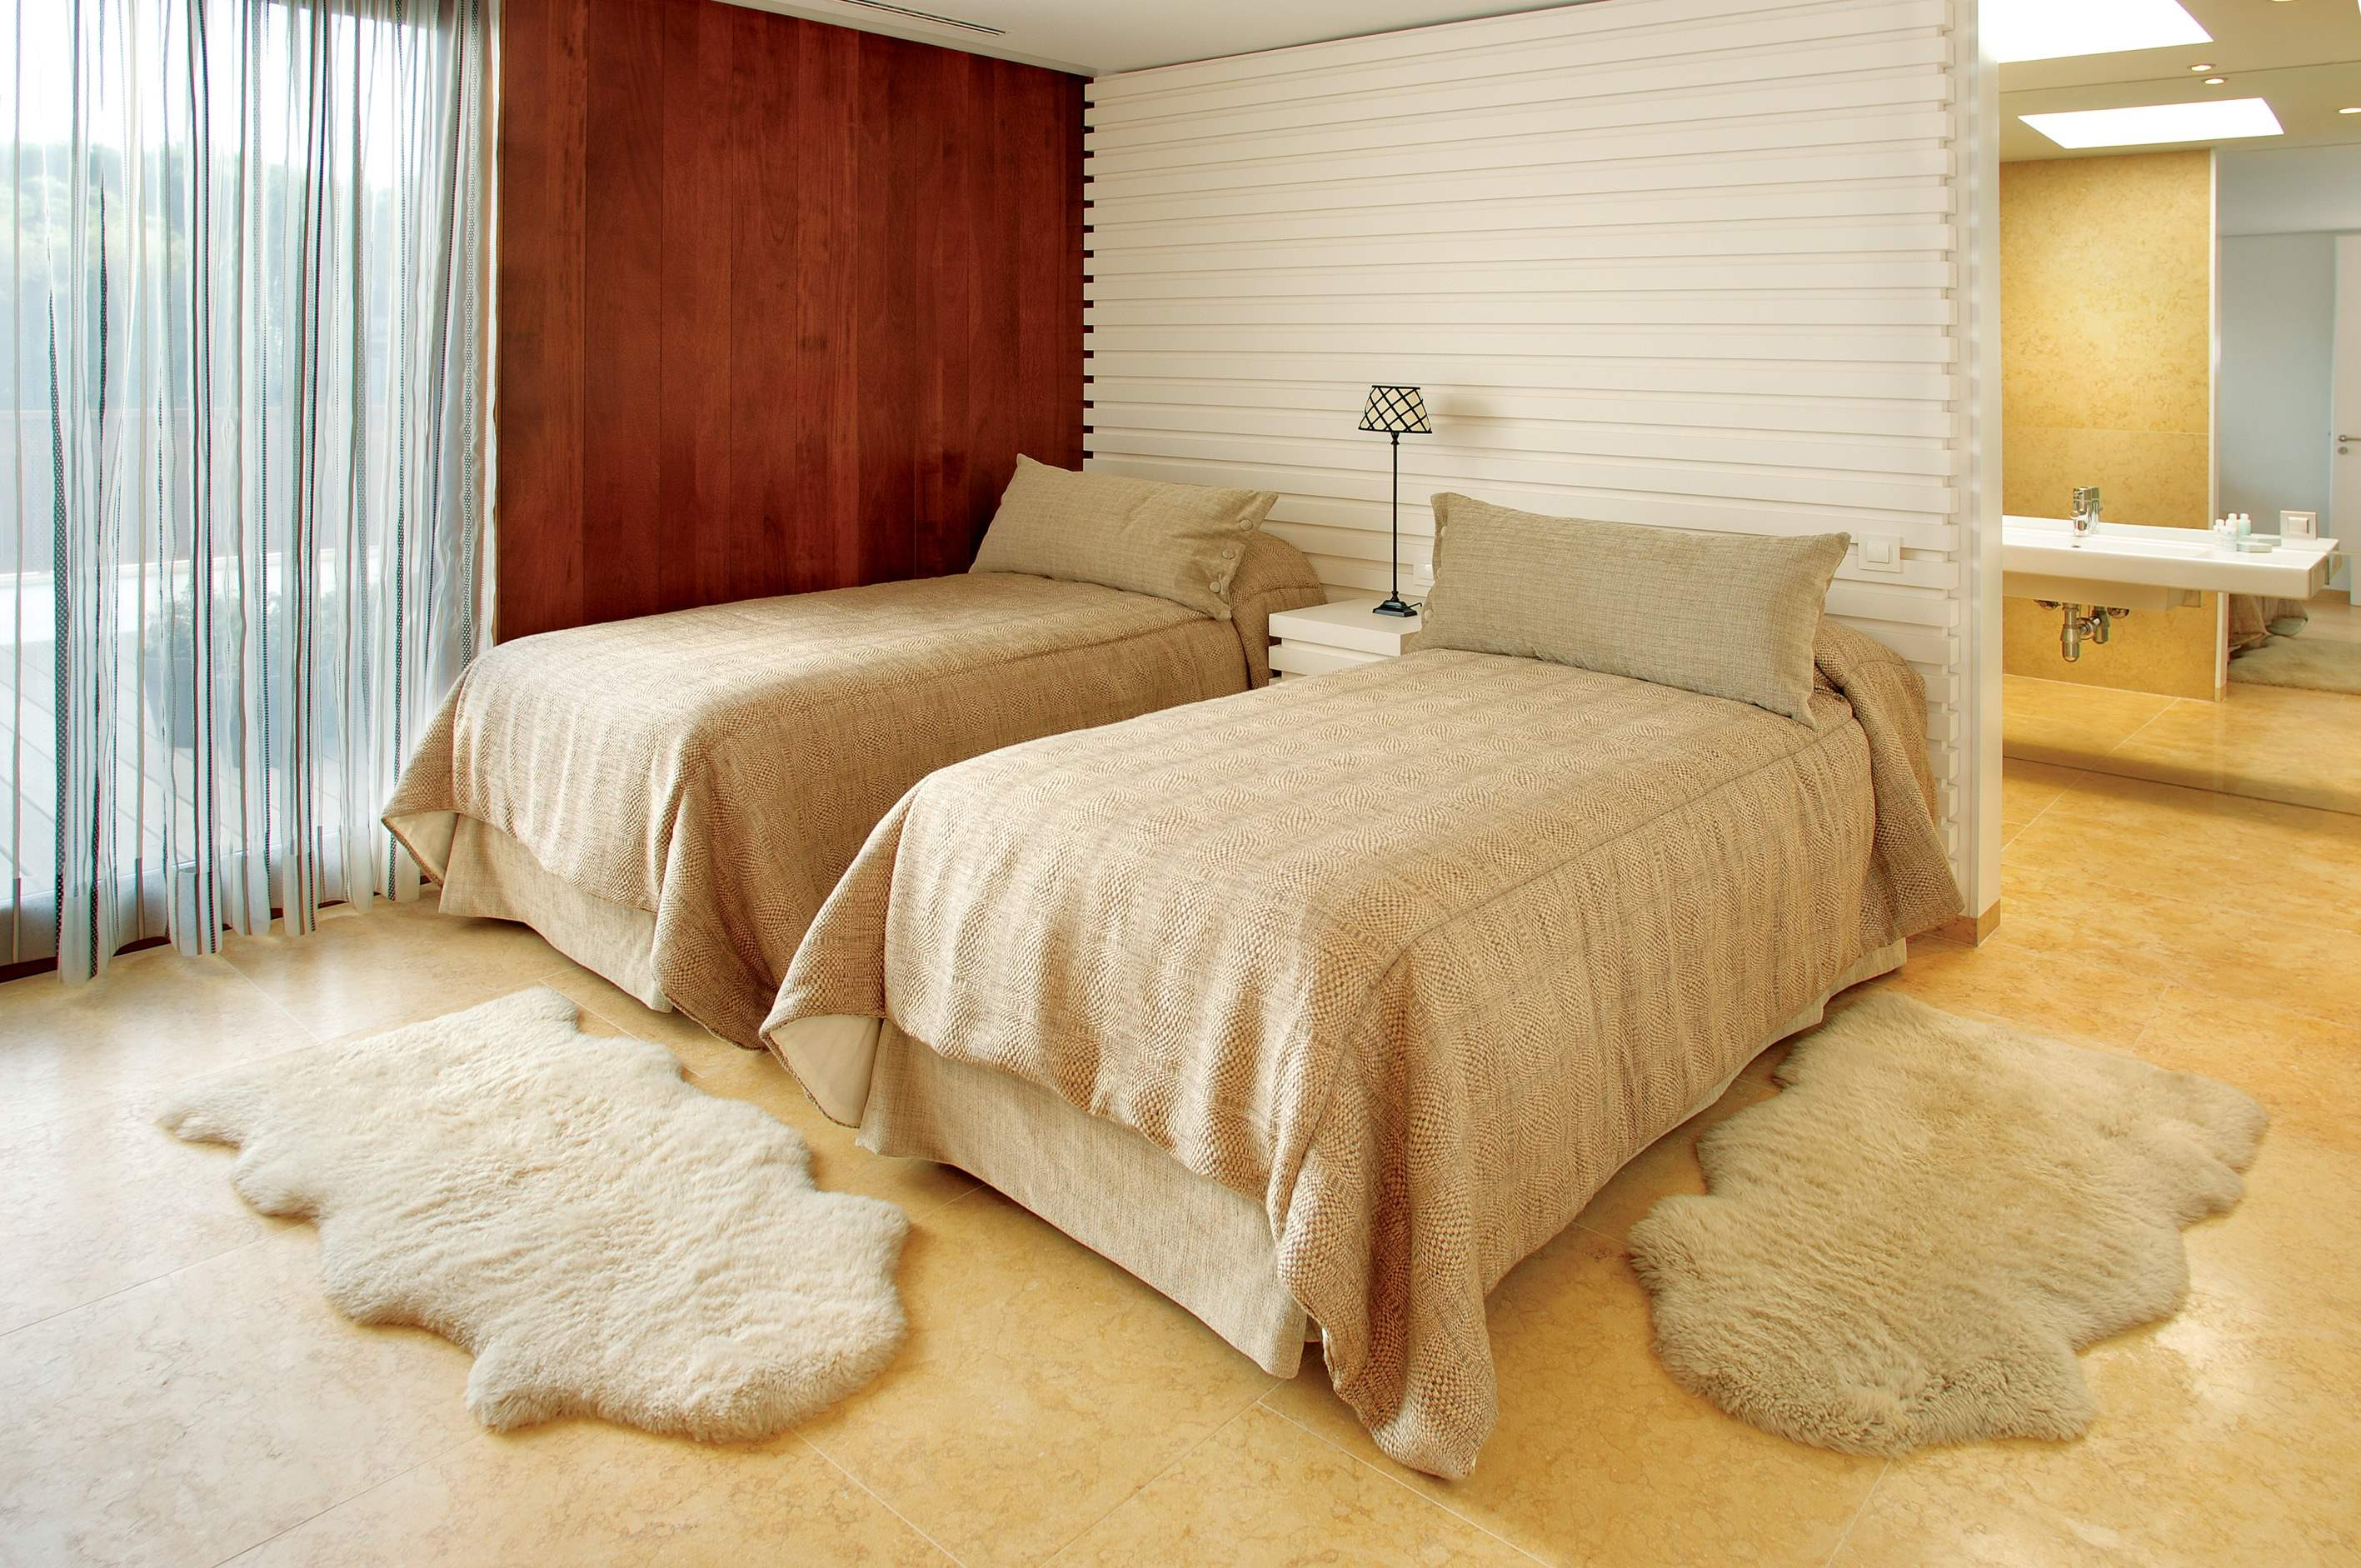 Pine Cliffs Terraces, 2 Bedroom, room only basis , 2 bedroom villa in Pine Cliffs Resort, Algarve Photo #16